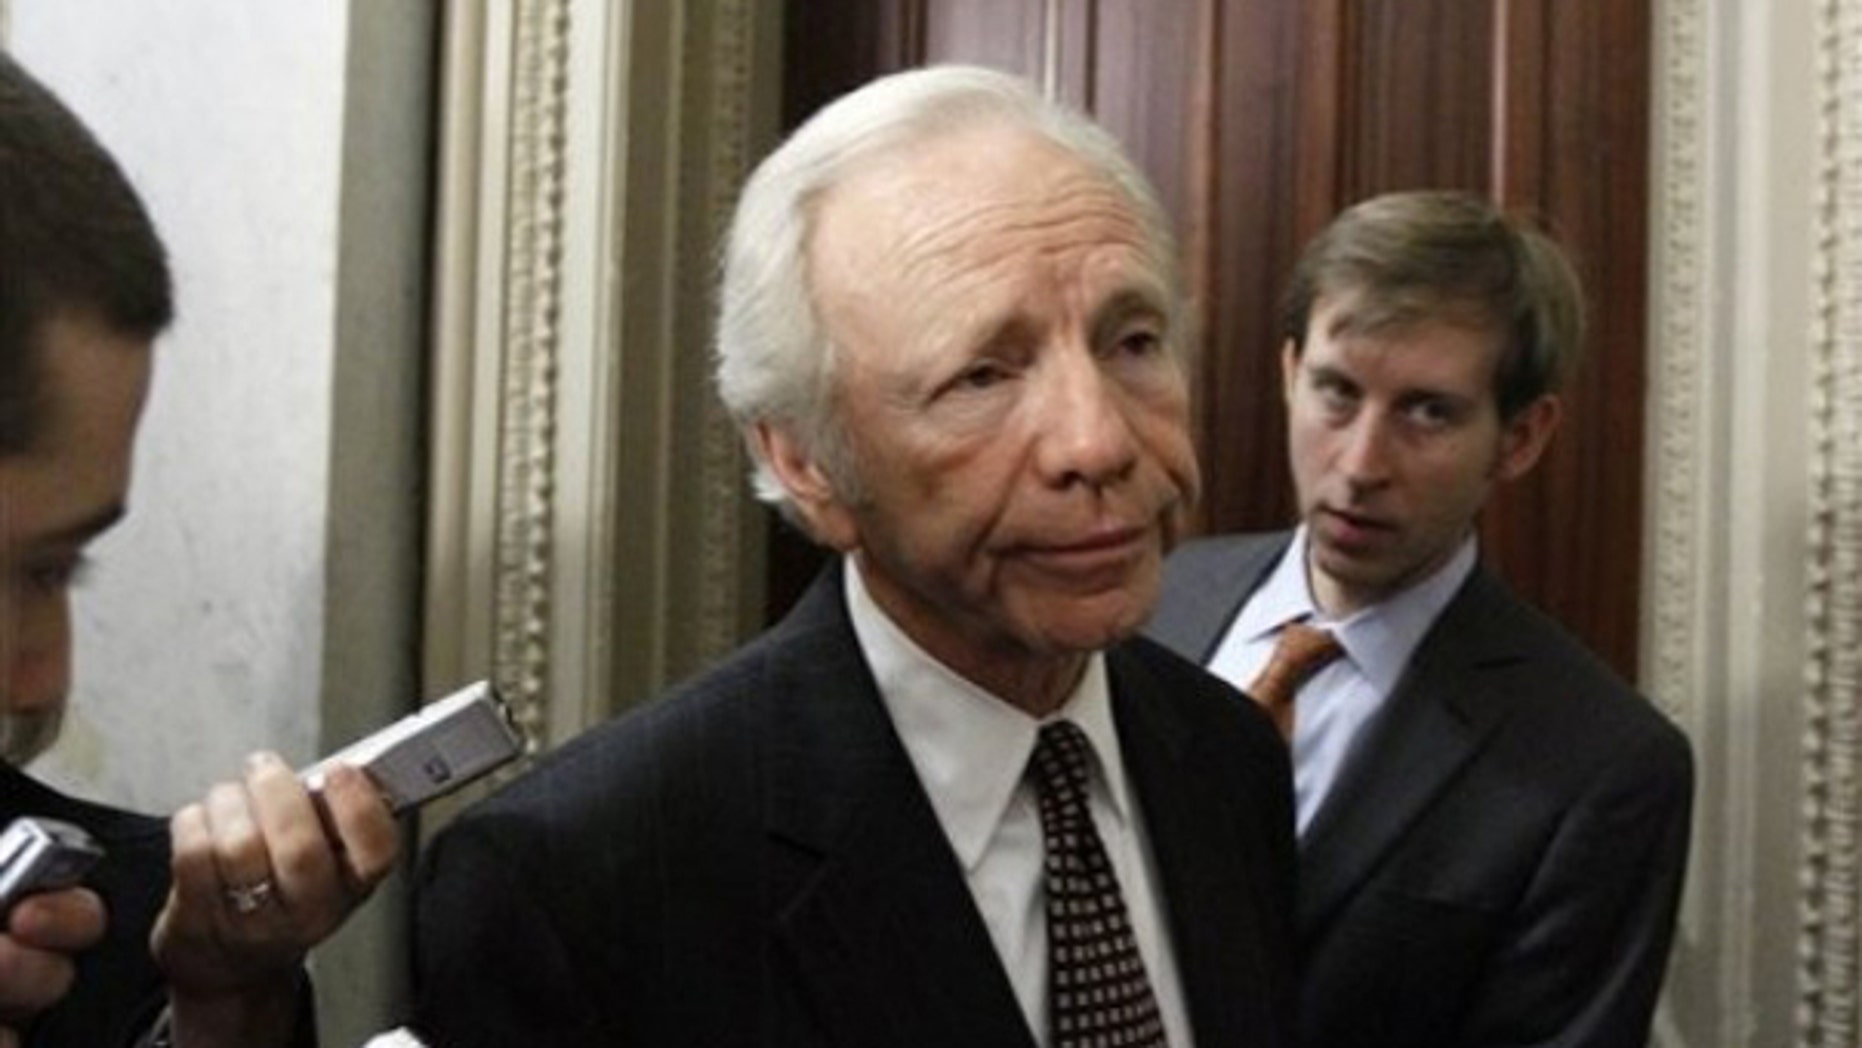 Sen. Joe Lieberman pauses before heading into a Democratic caucus on health care reform in Washington, in this Nov. 18, 2009, file photo. (AP Photo)